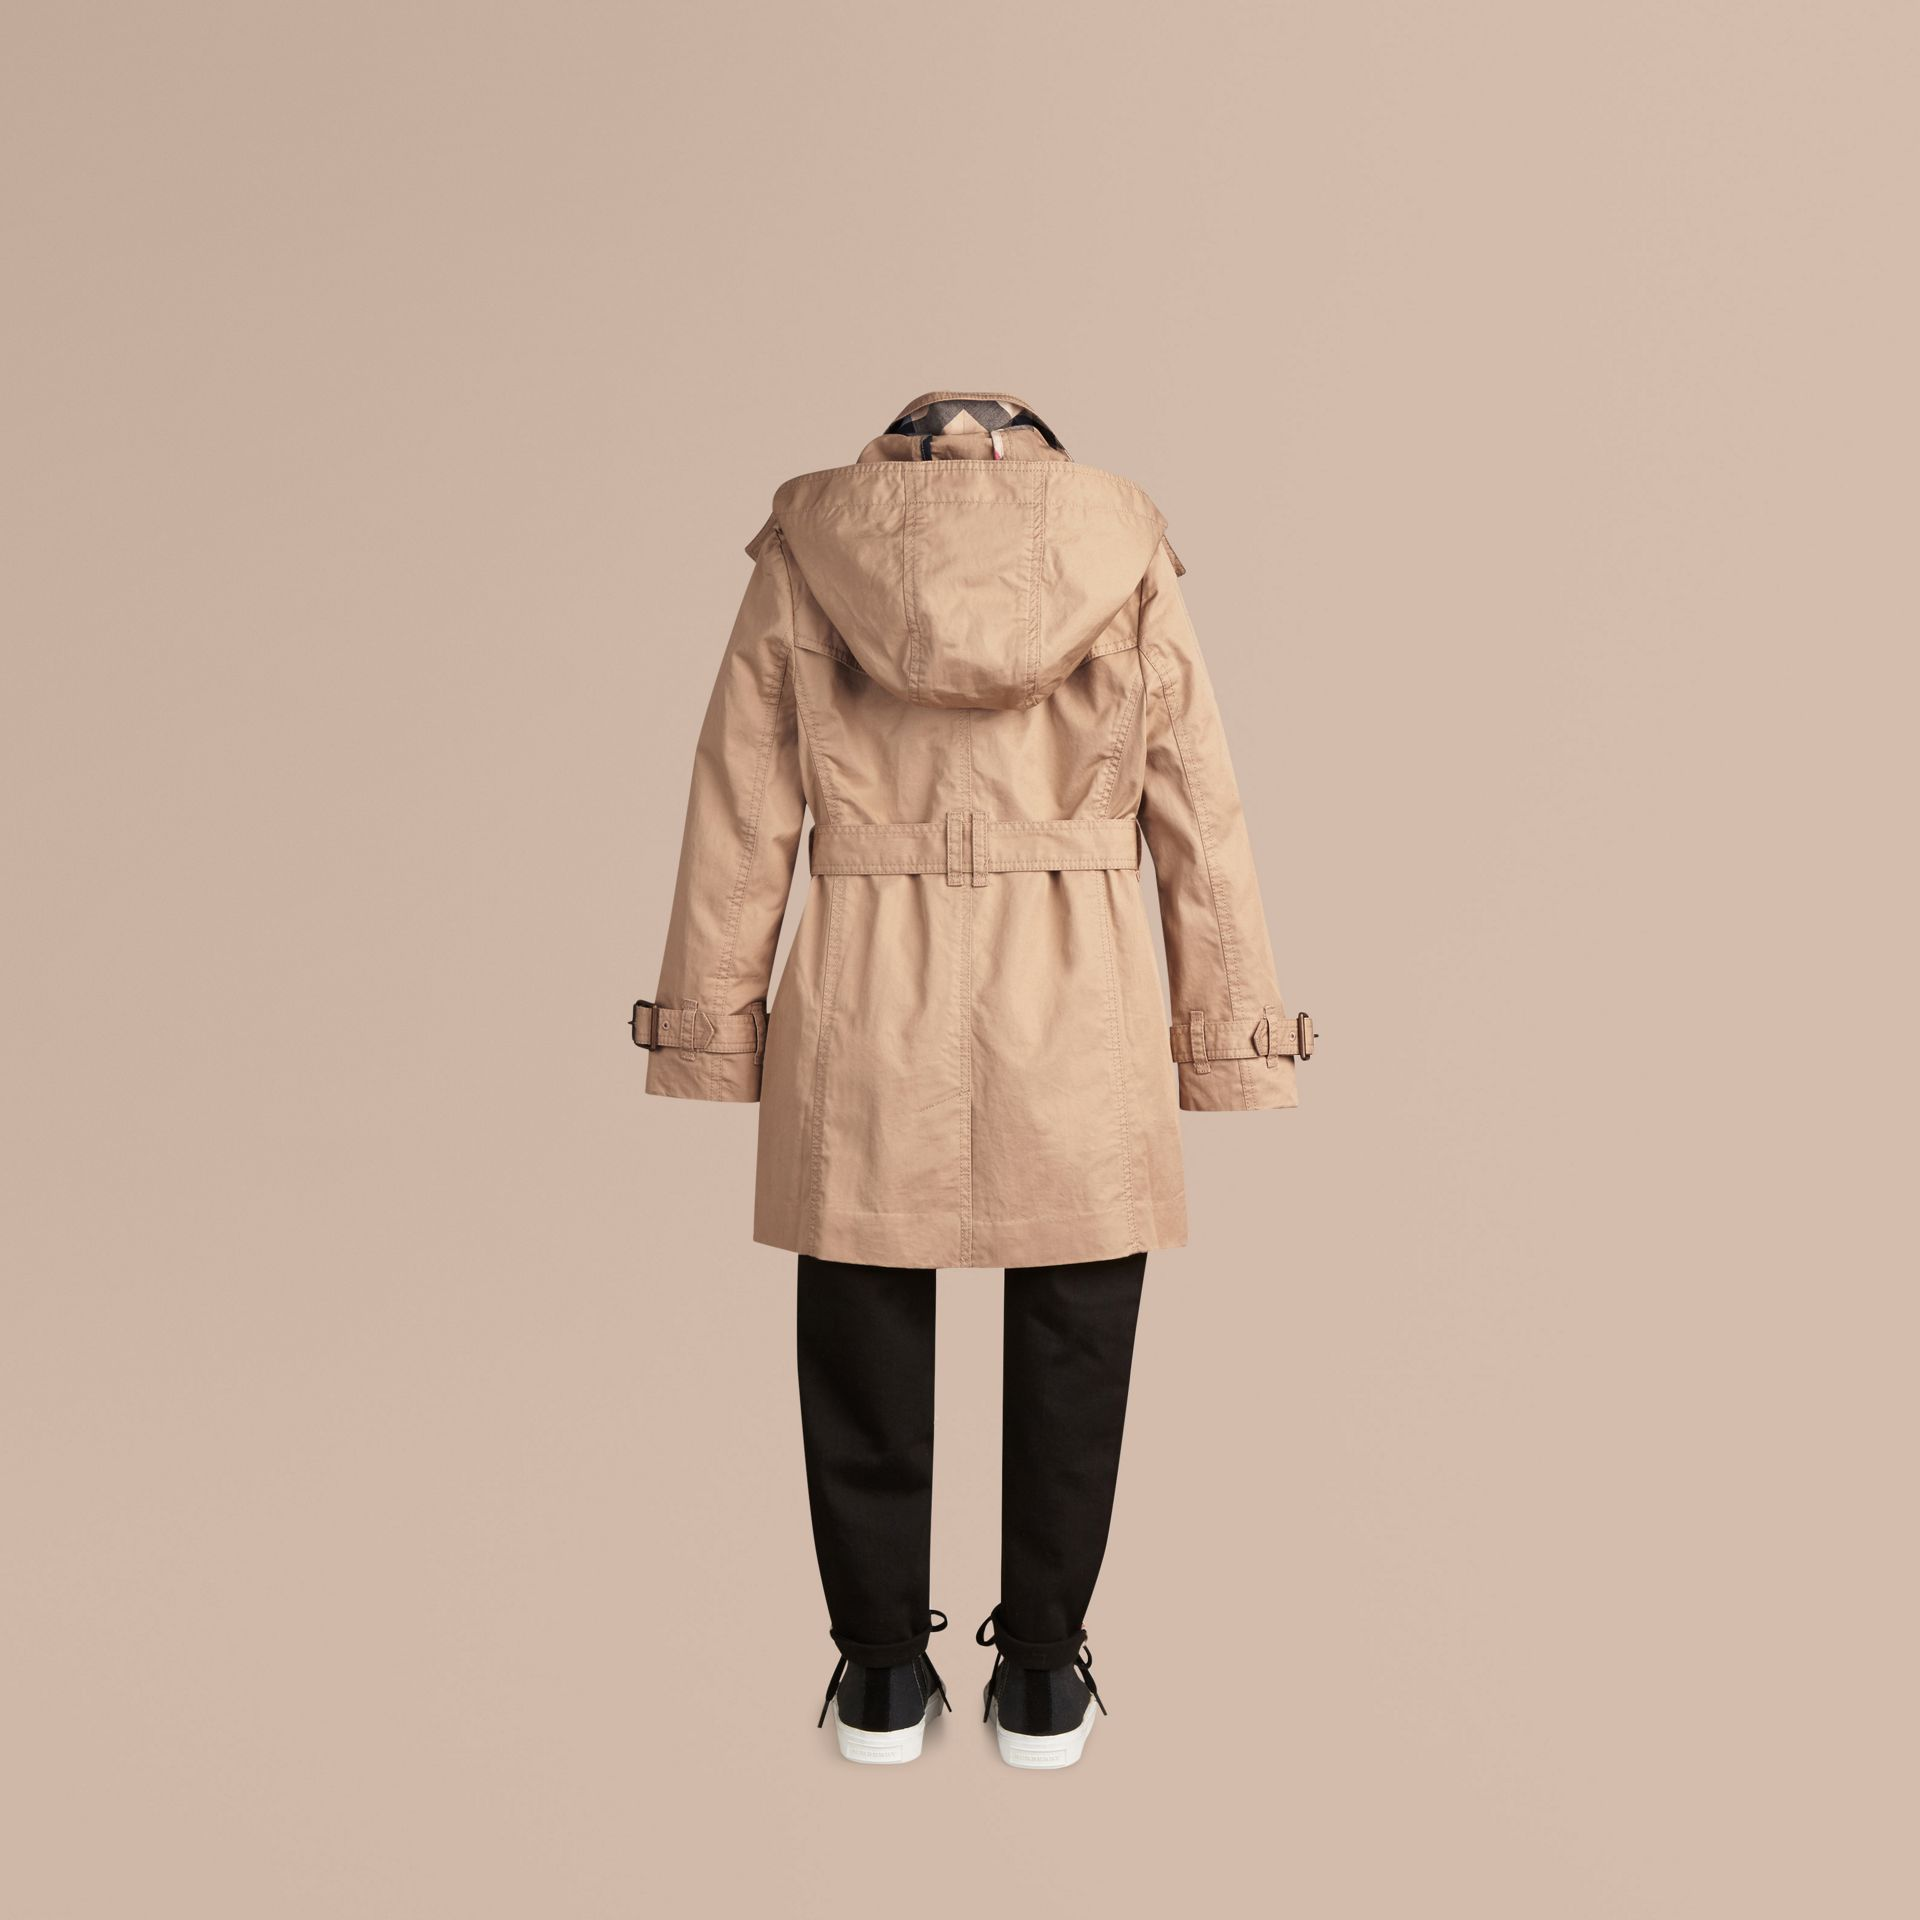 Miel Trench-coat à capuche amovible en sergé de coton - photo de la galerie 4